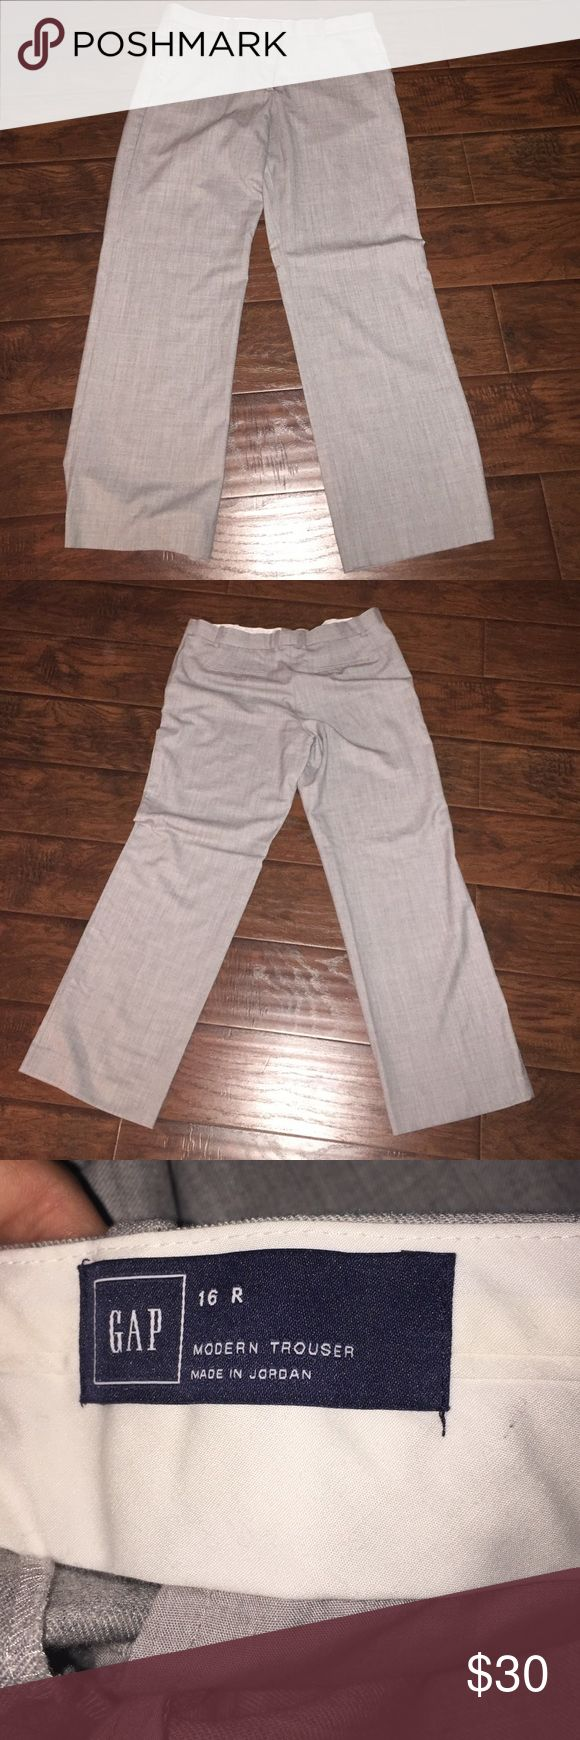 GAP Trousers 16R GAP Trousers 16R, modern fit. New without tags. GAP Pants Trousers